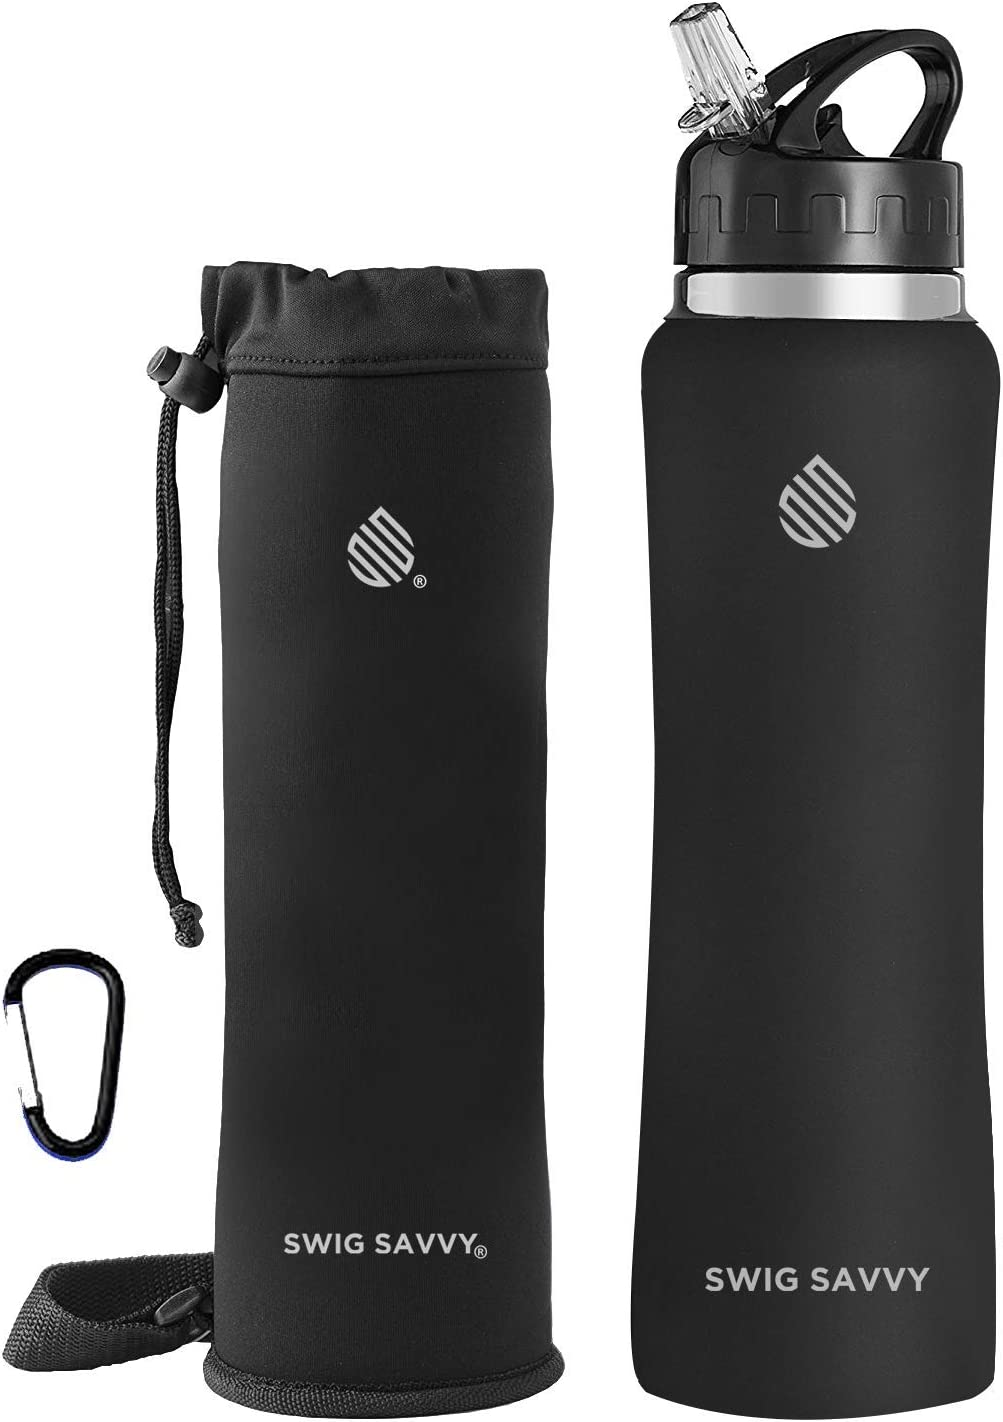 Swig Savvy Stainless Steel Insulated Leak Proof Flip Top Straw Cap Water Bottles with Pouch & Clip, Black, 25oz